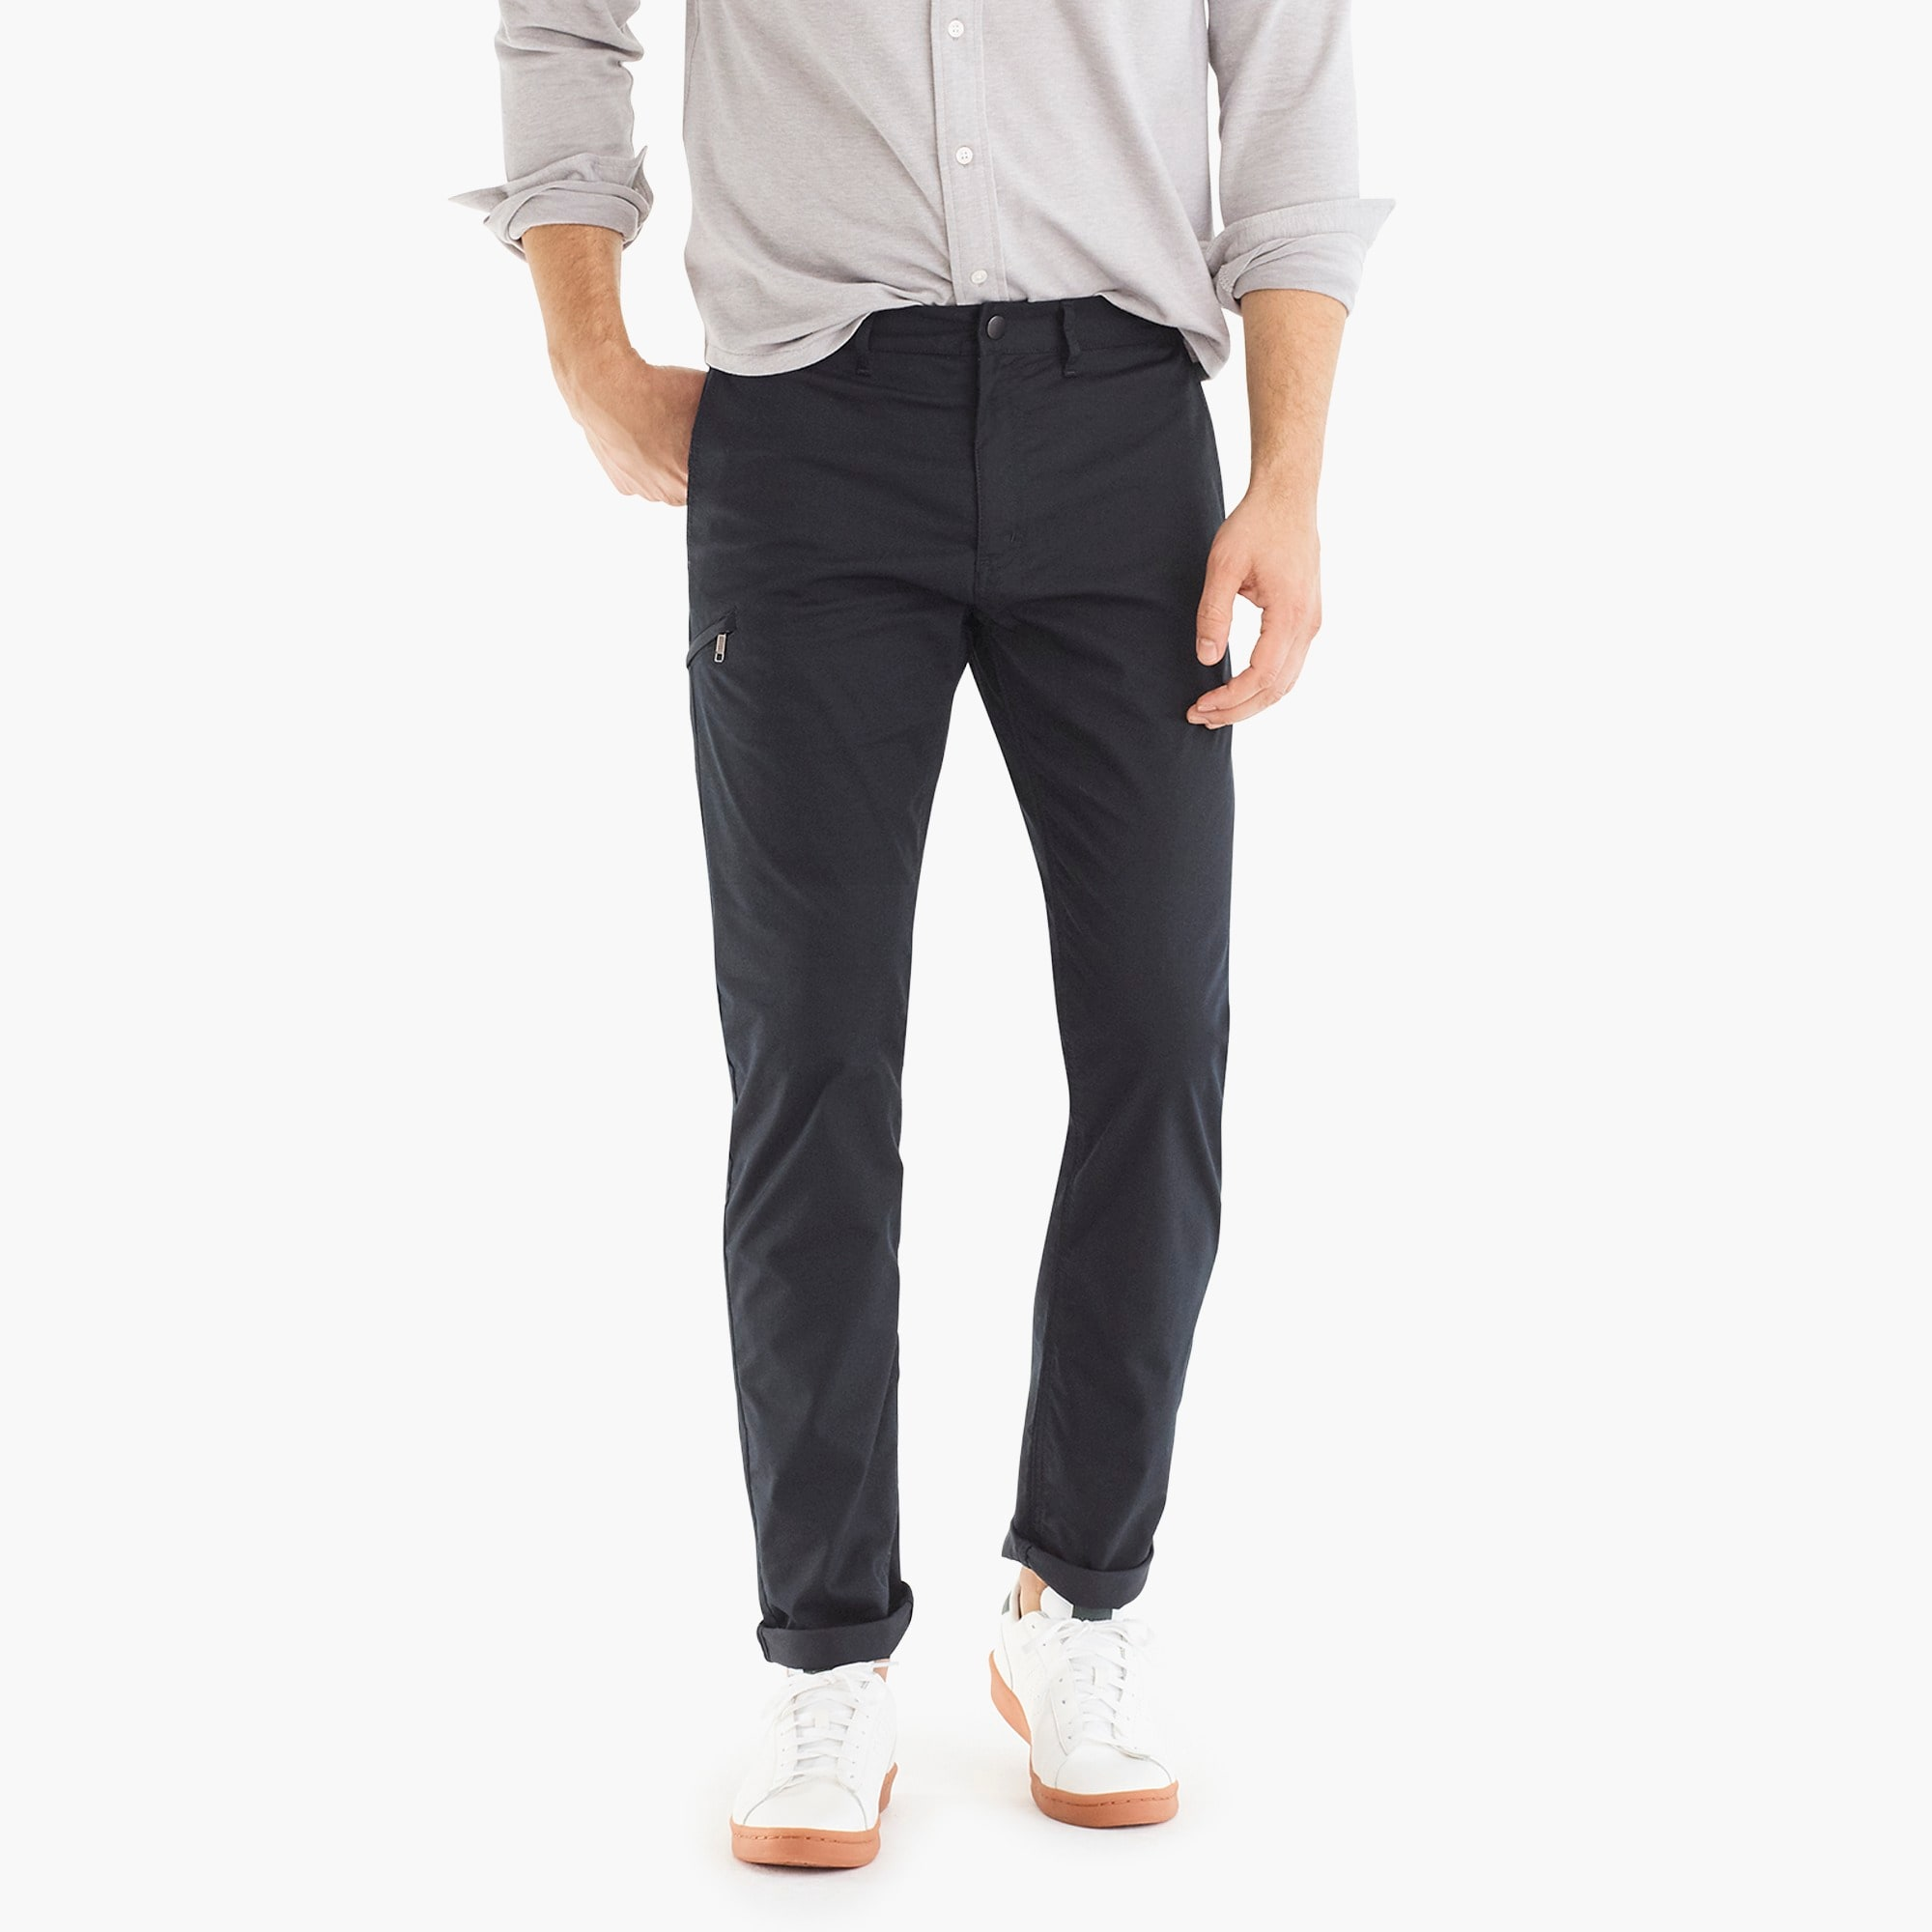 Image 1 for 484 Slim-fit adventure pant in tech twill